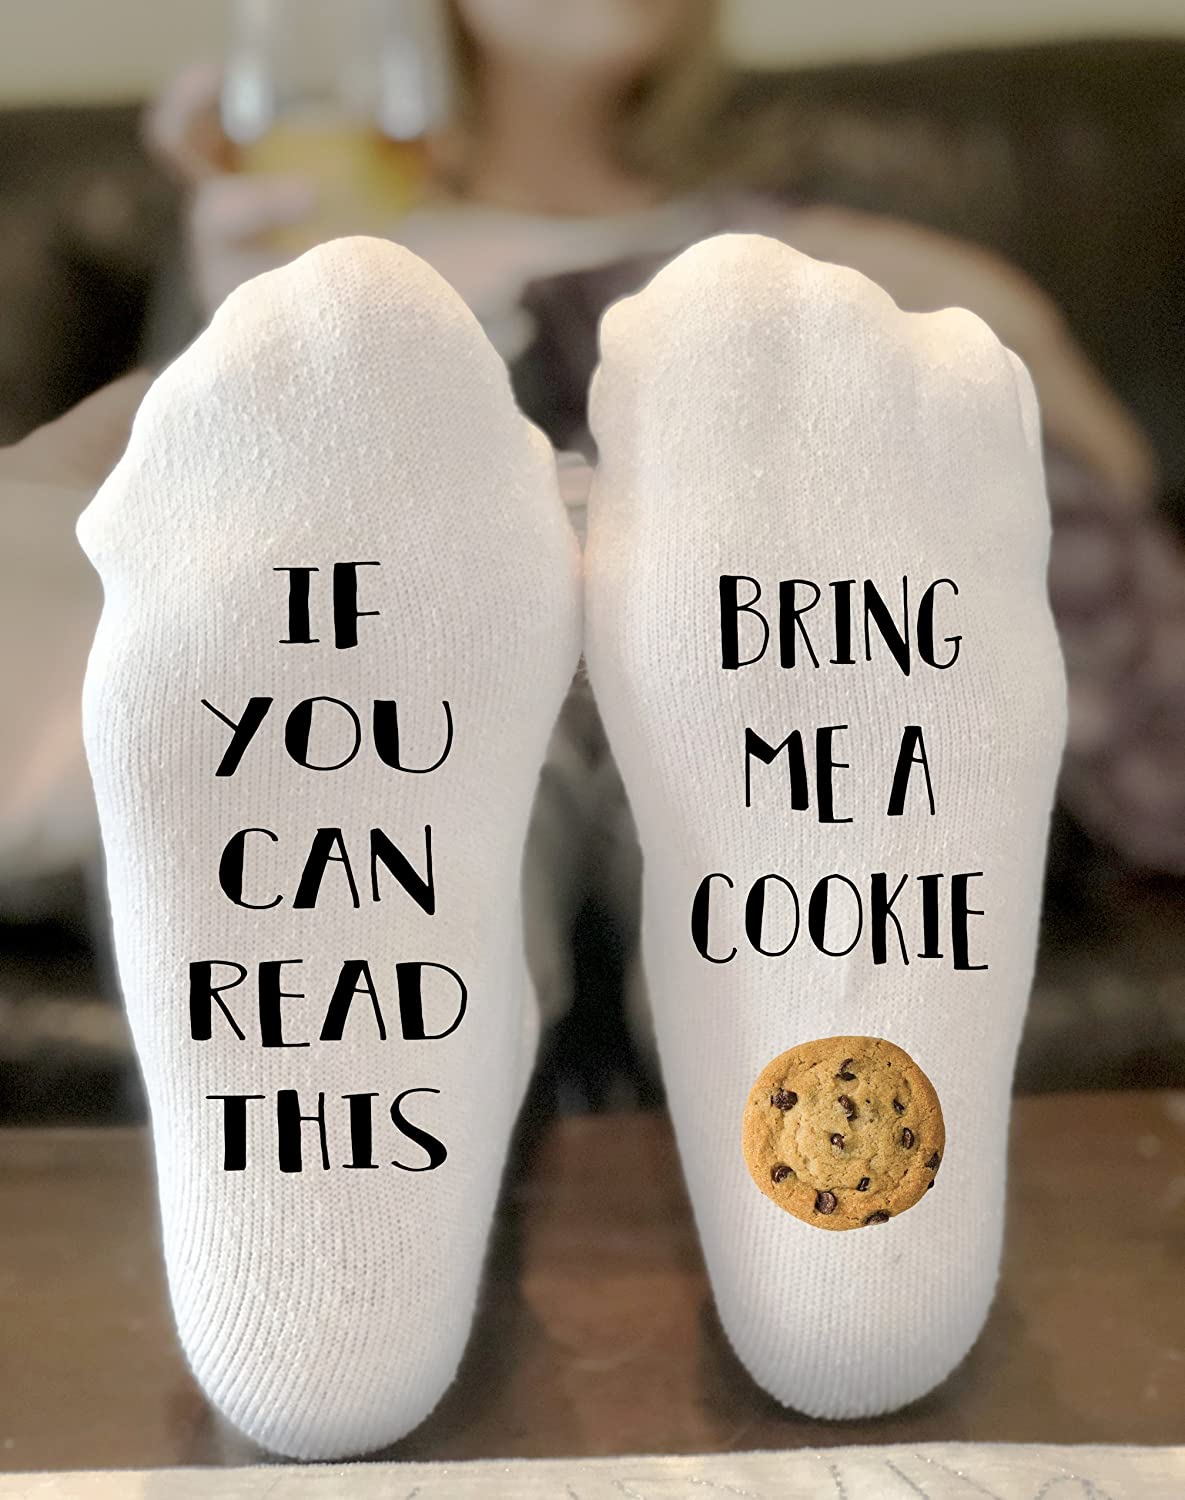 If You Can Read This Bring Me A Cookie Novelty Funky Crew Socks Men Women Christmas Gifts Cotton Slipper Socks